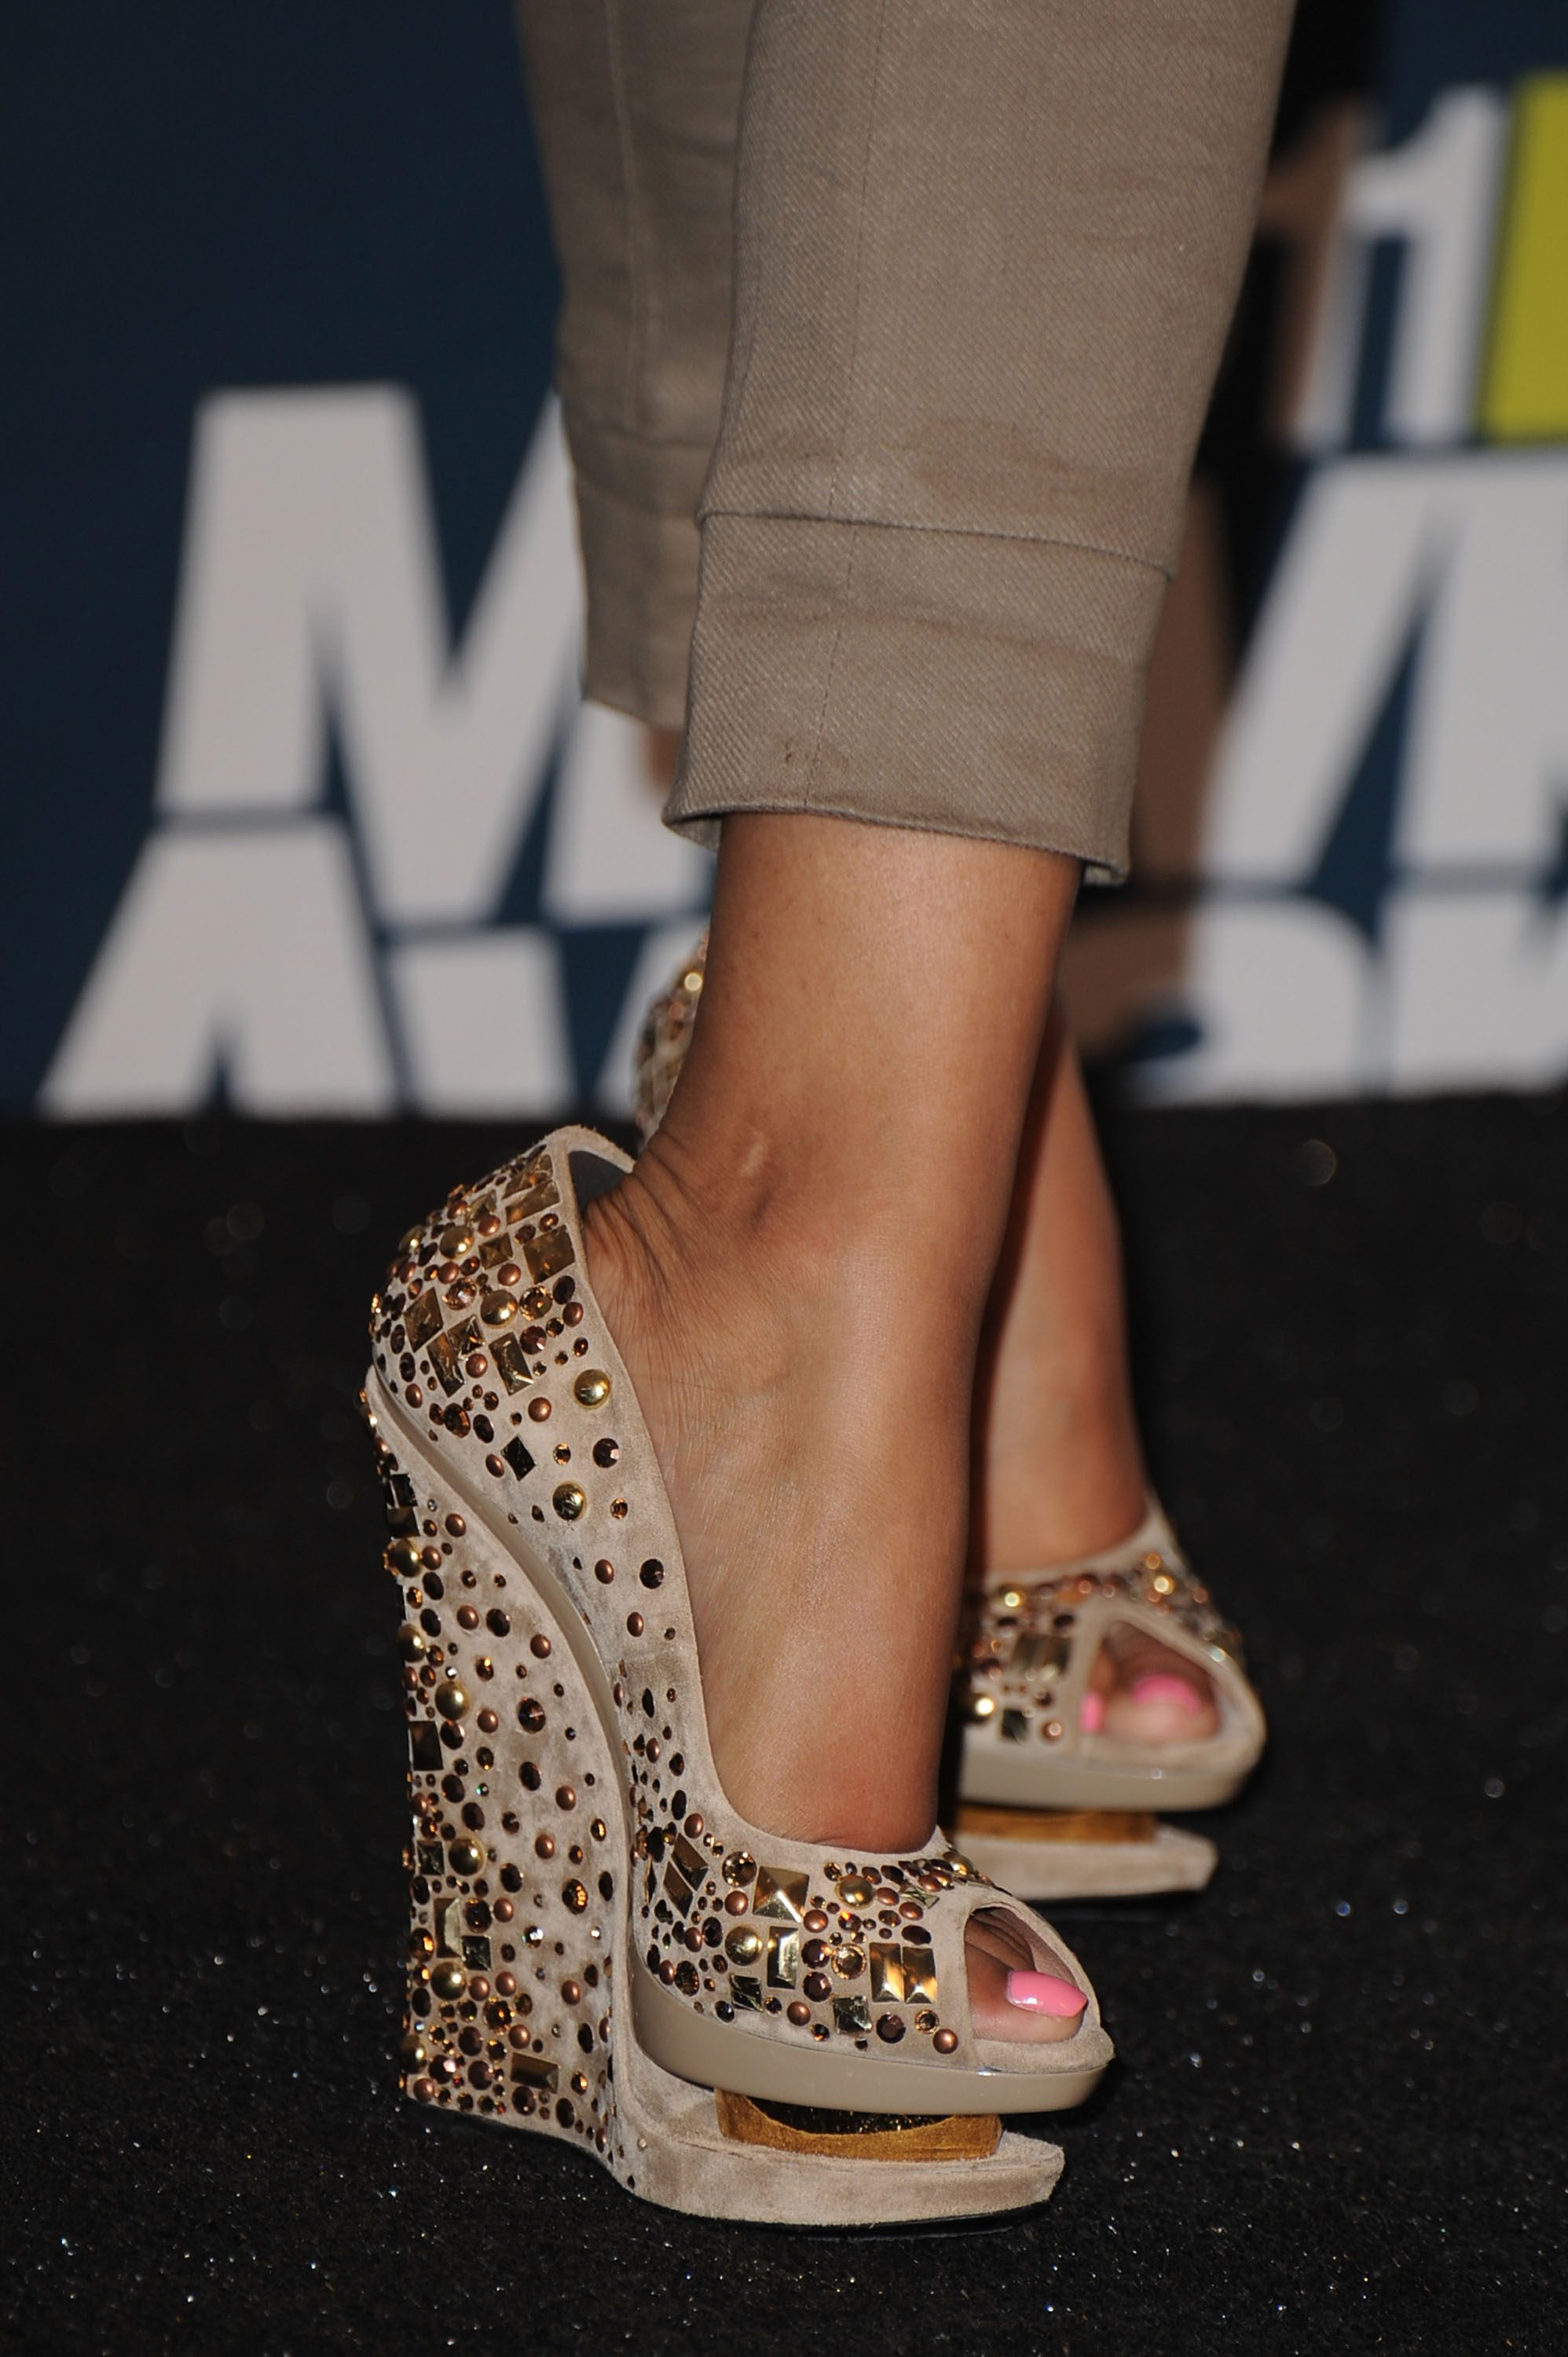 Nicki Minaj Feet Wikifeet http://www.shoesession.com/forum/viewtopic.php?f=6&t=41062